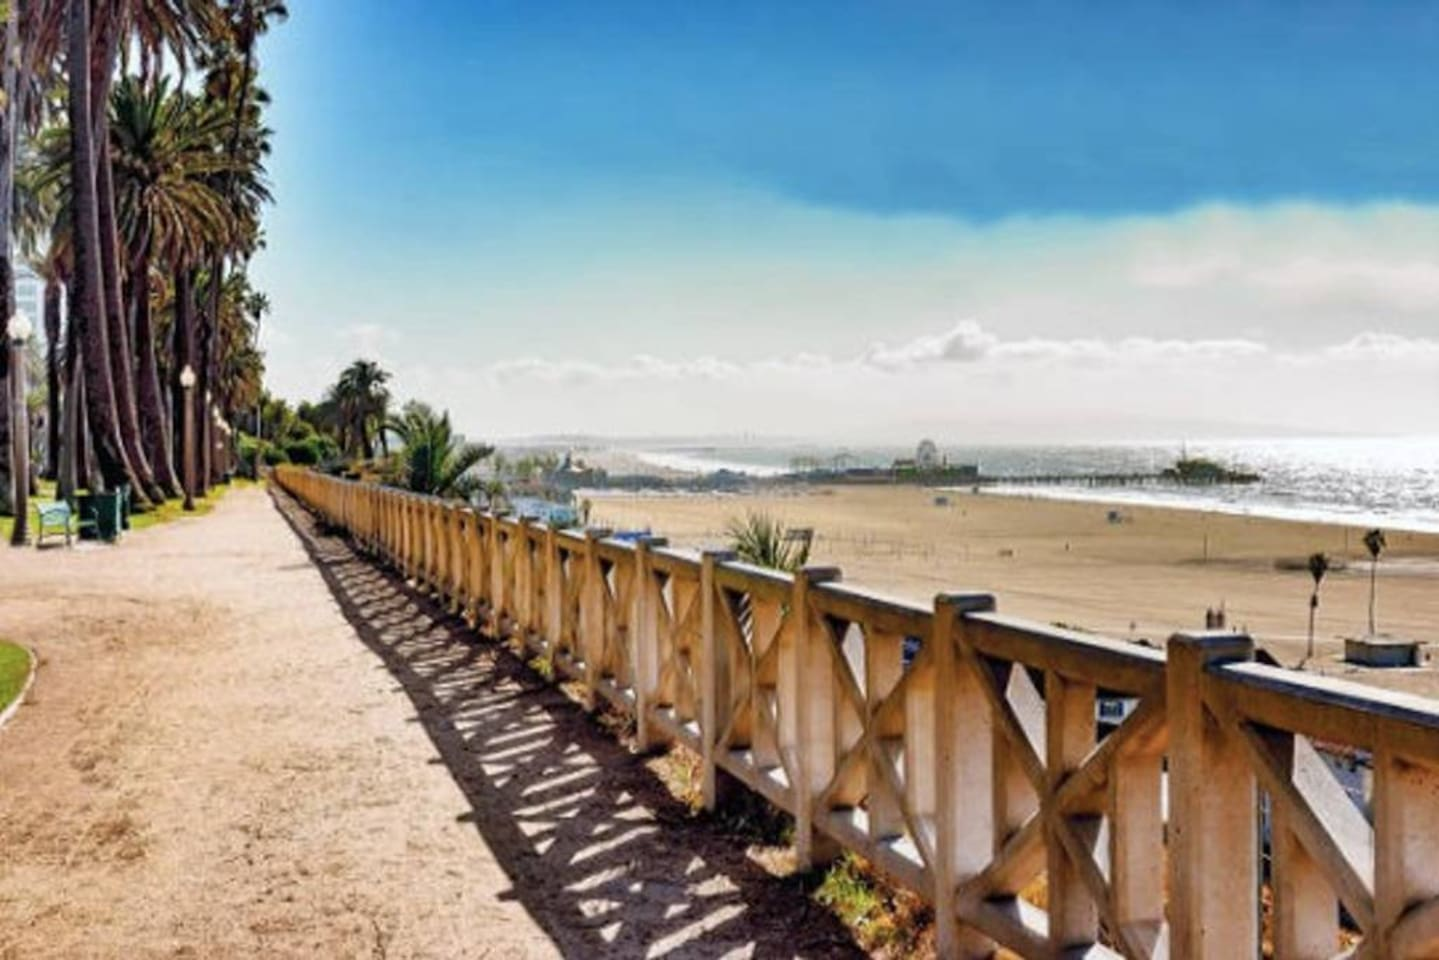 Welcome! Our 1 bedroom 1 bathroom home in gorgeous San Diego is the perfect vacation rental! 2 min. walk to the beach and close to many amazing restaurants and bars - this home is the BEST location.